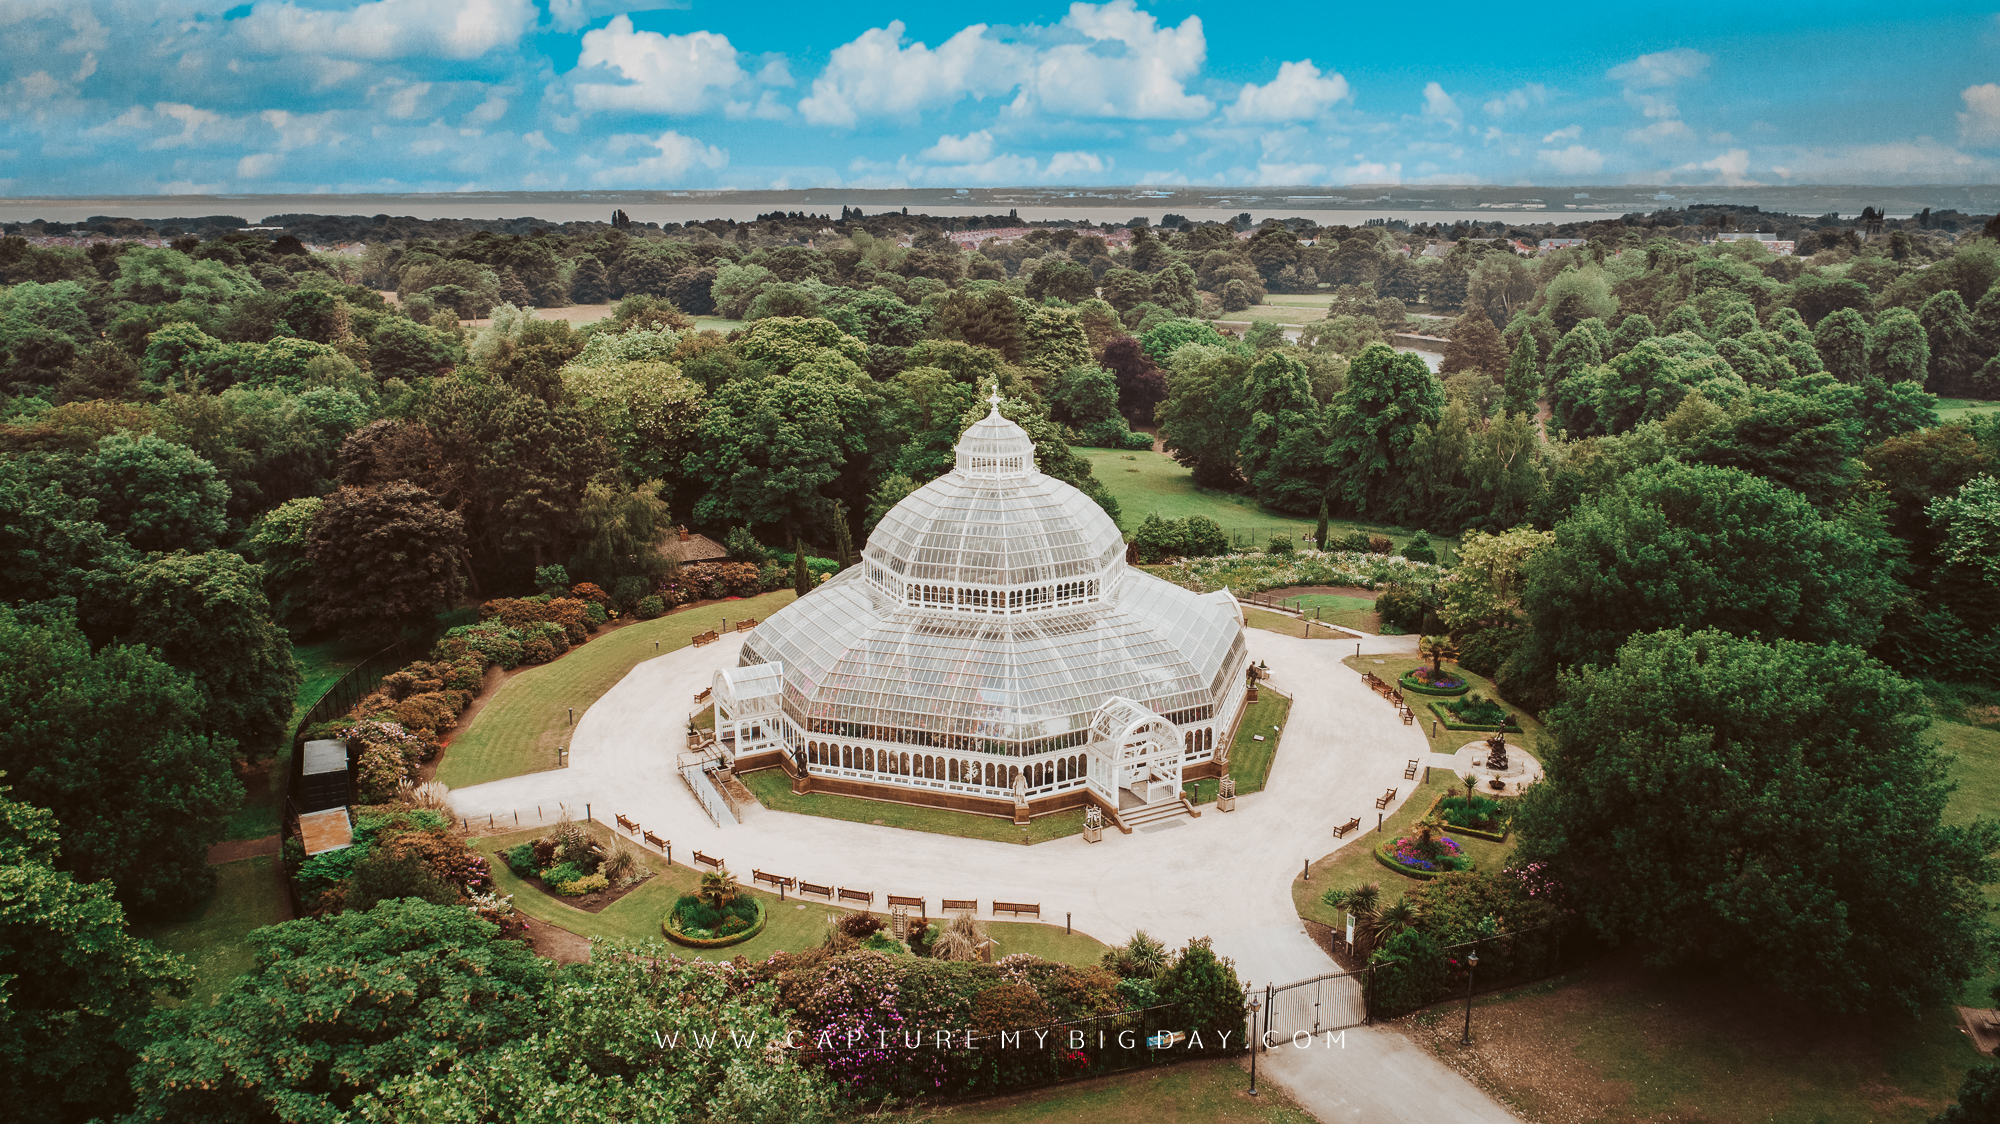 Palm house at Sefton Park drone image